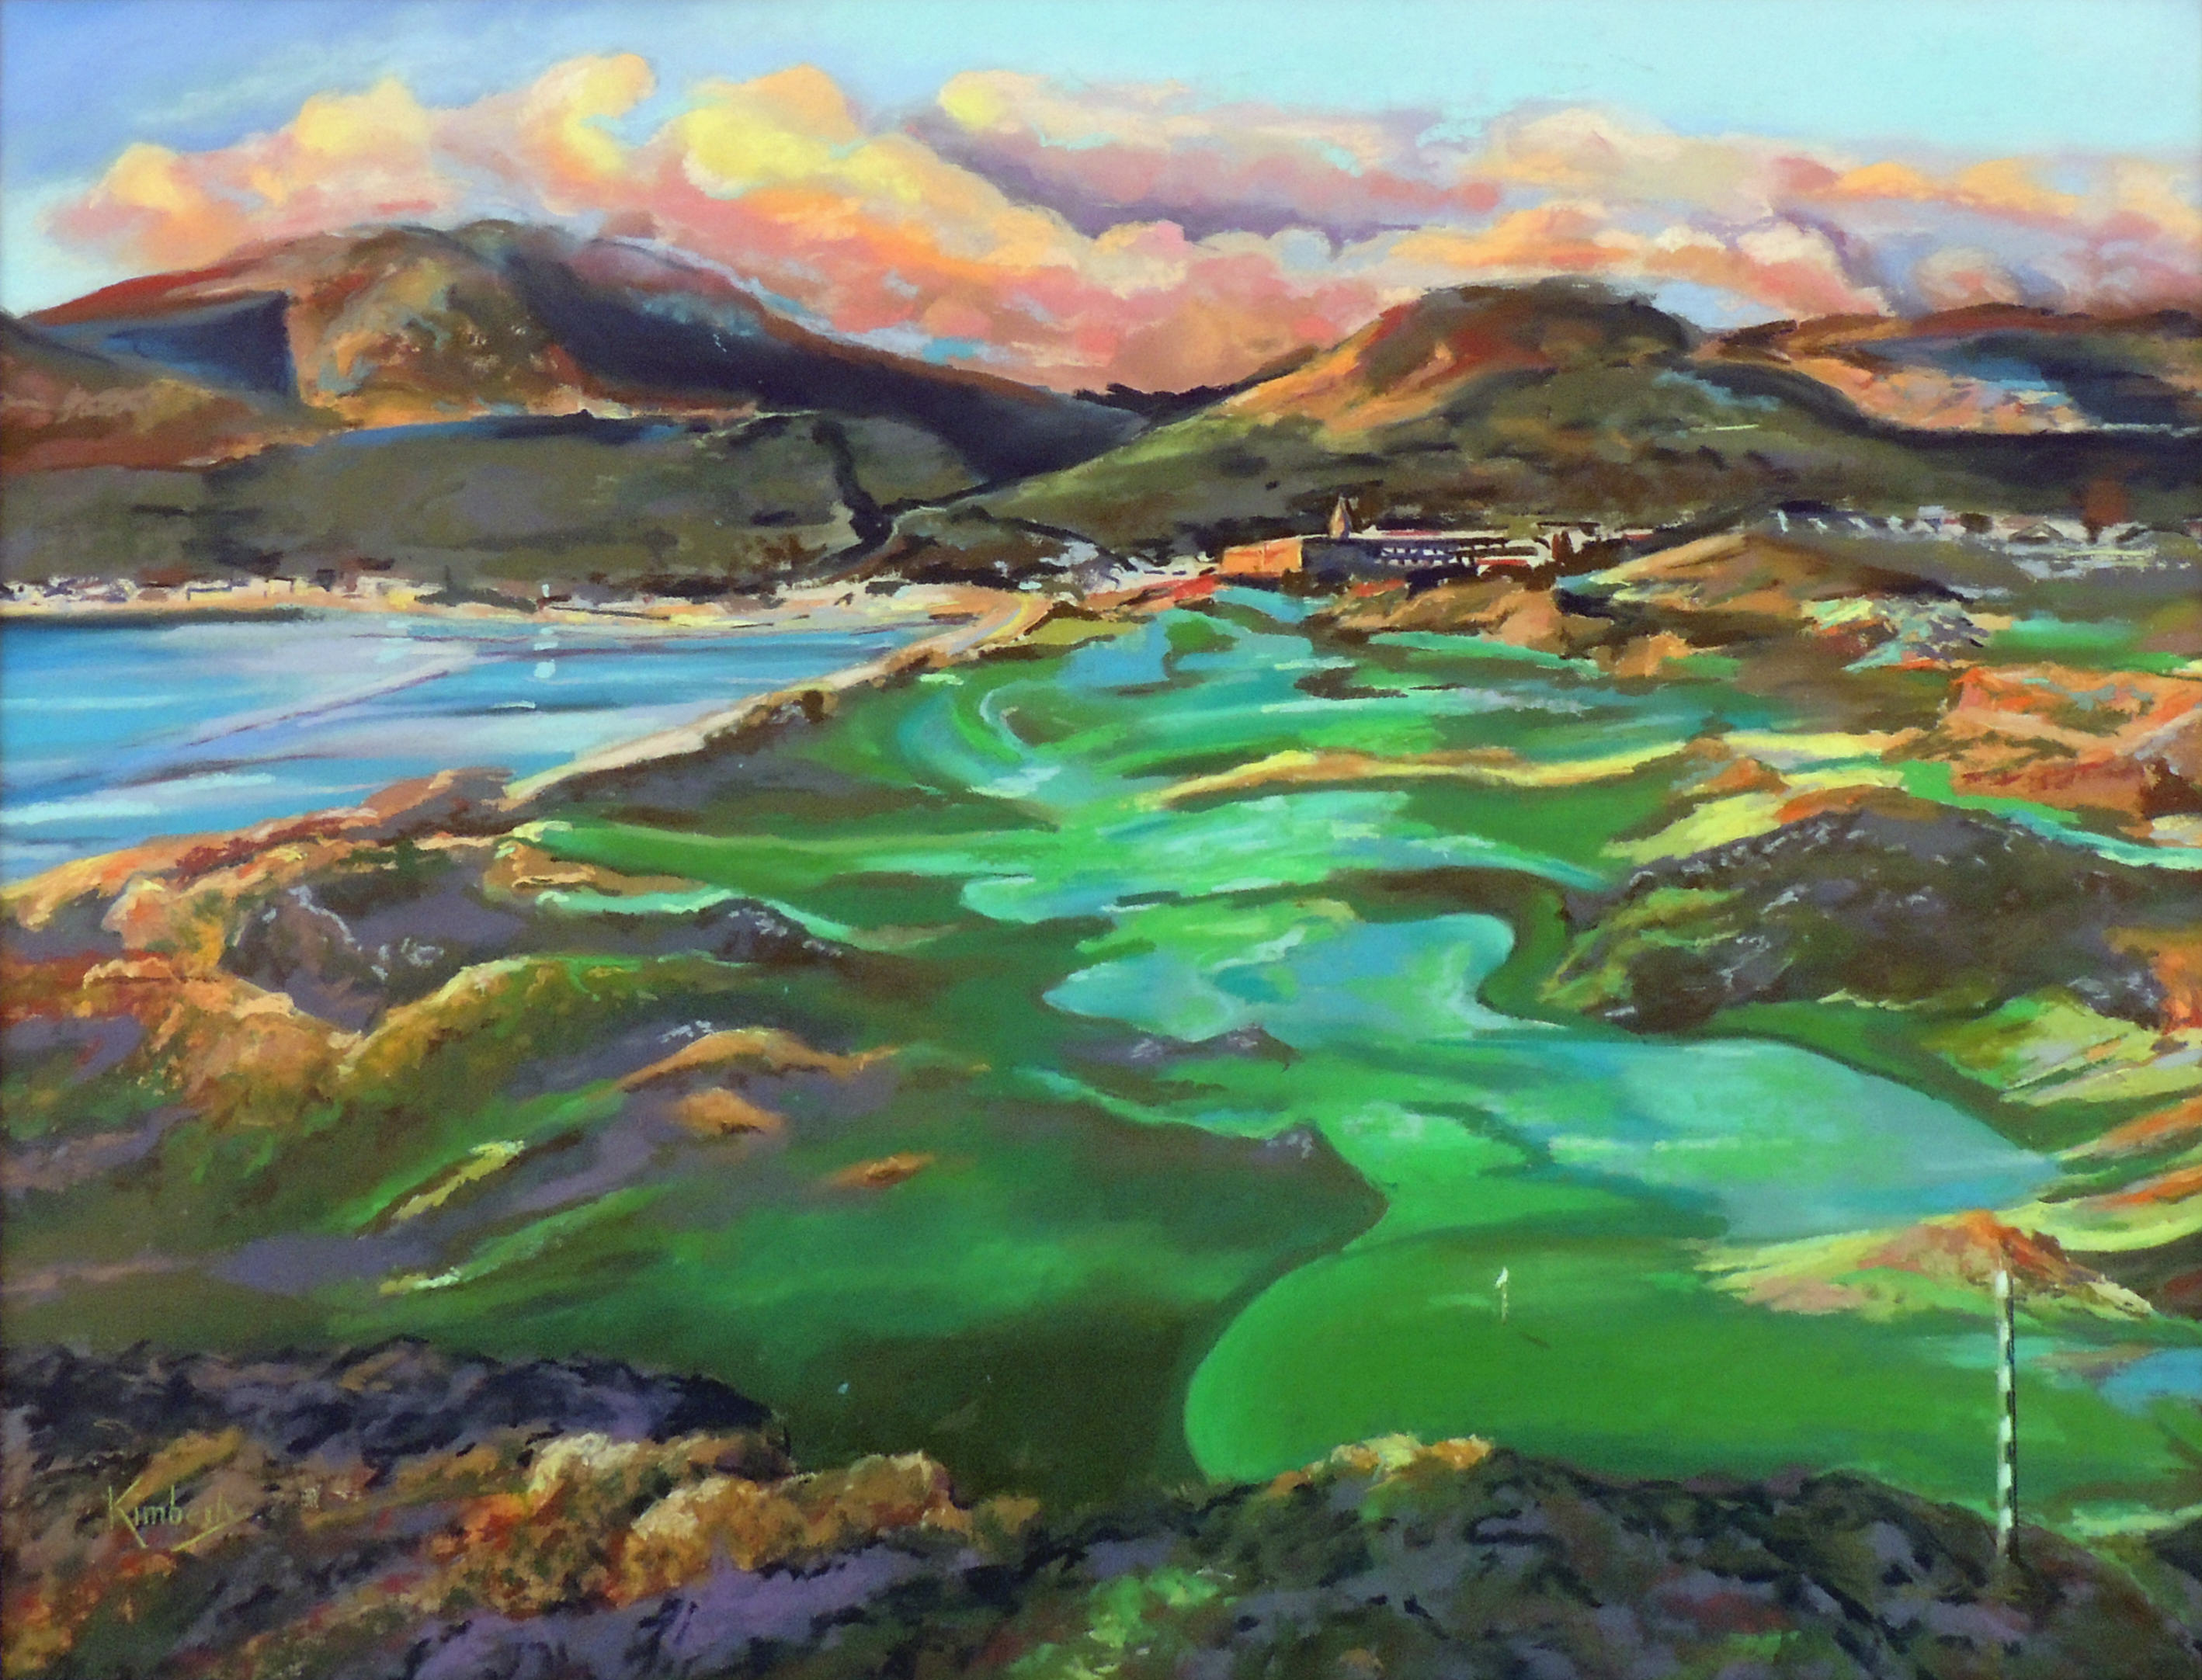 Kim Ceccarelli | ROYAL COUNTY DOWN | Pastel